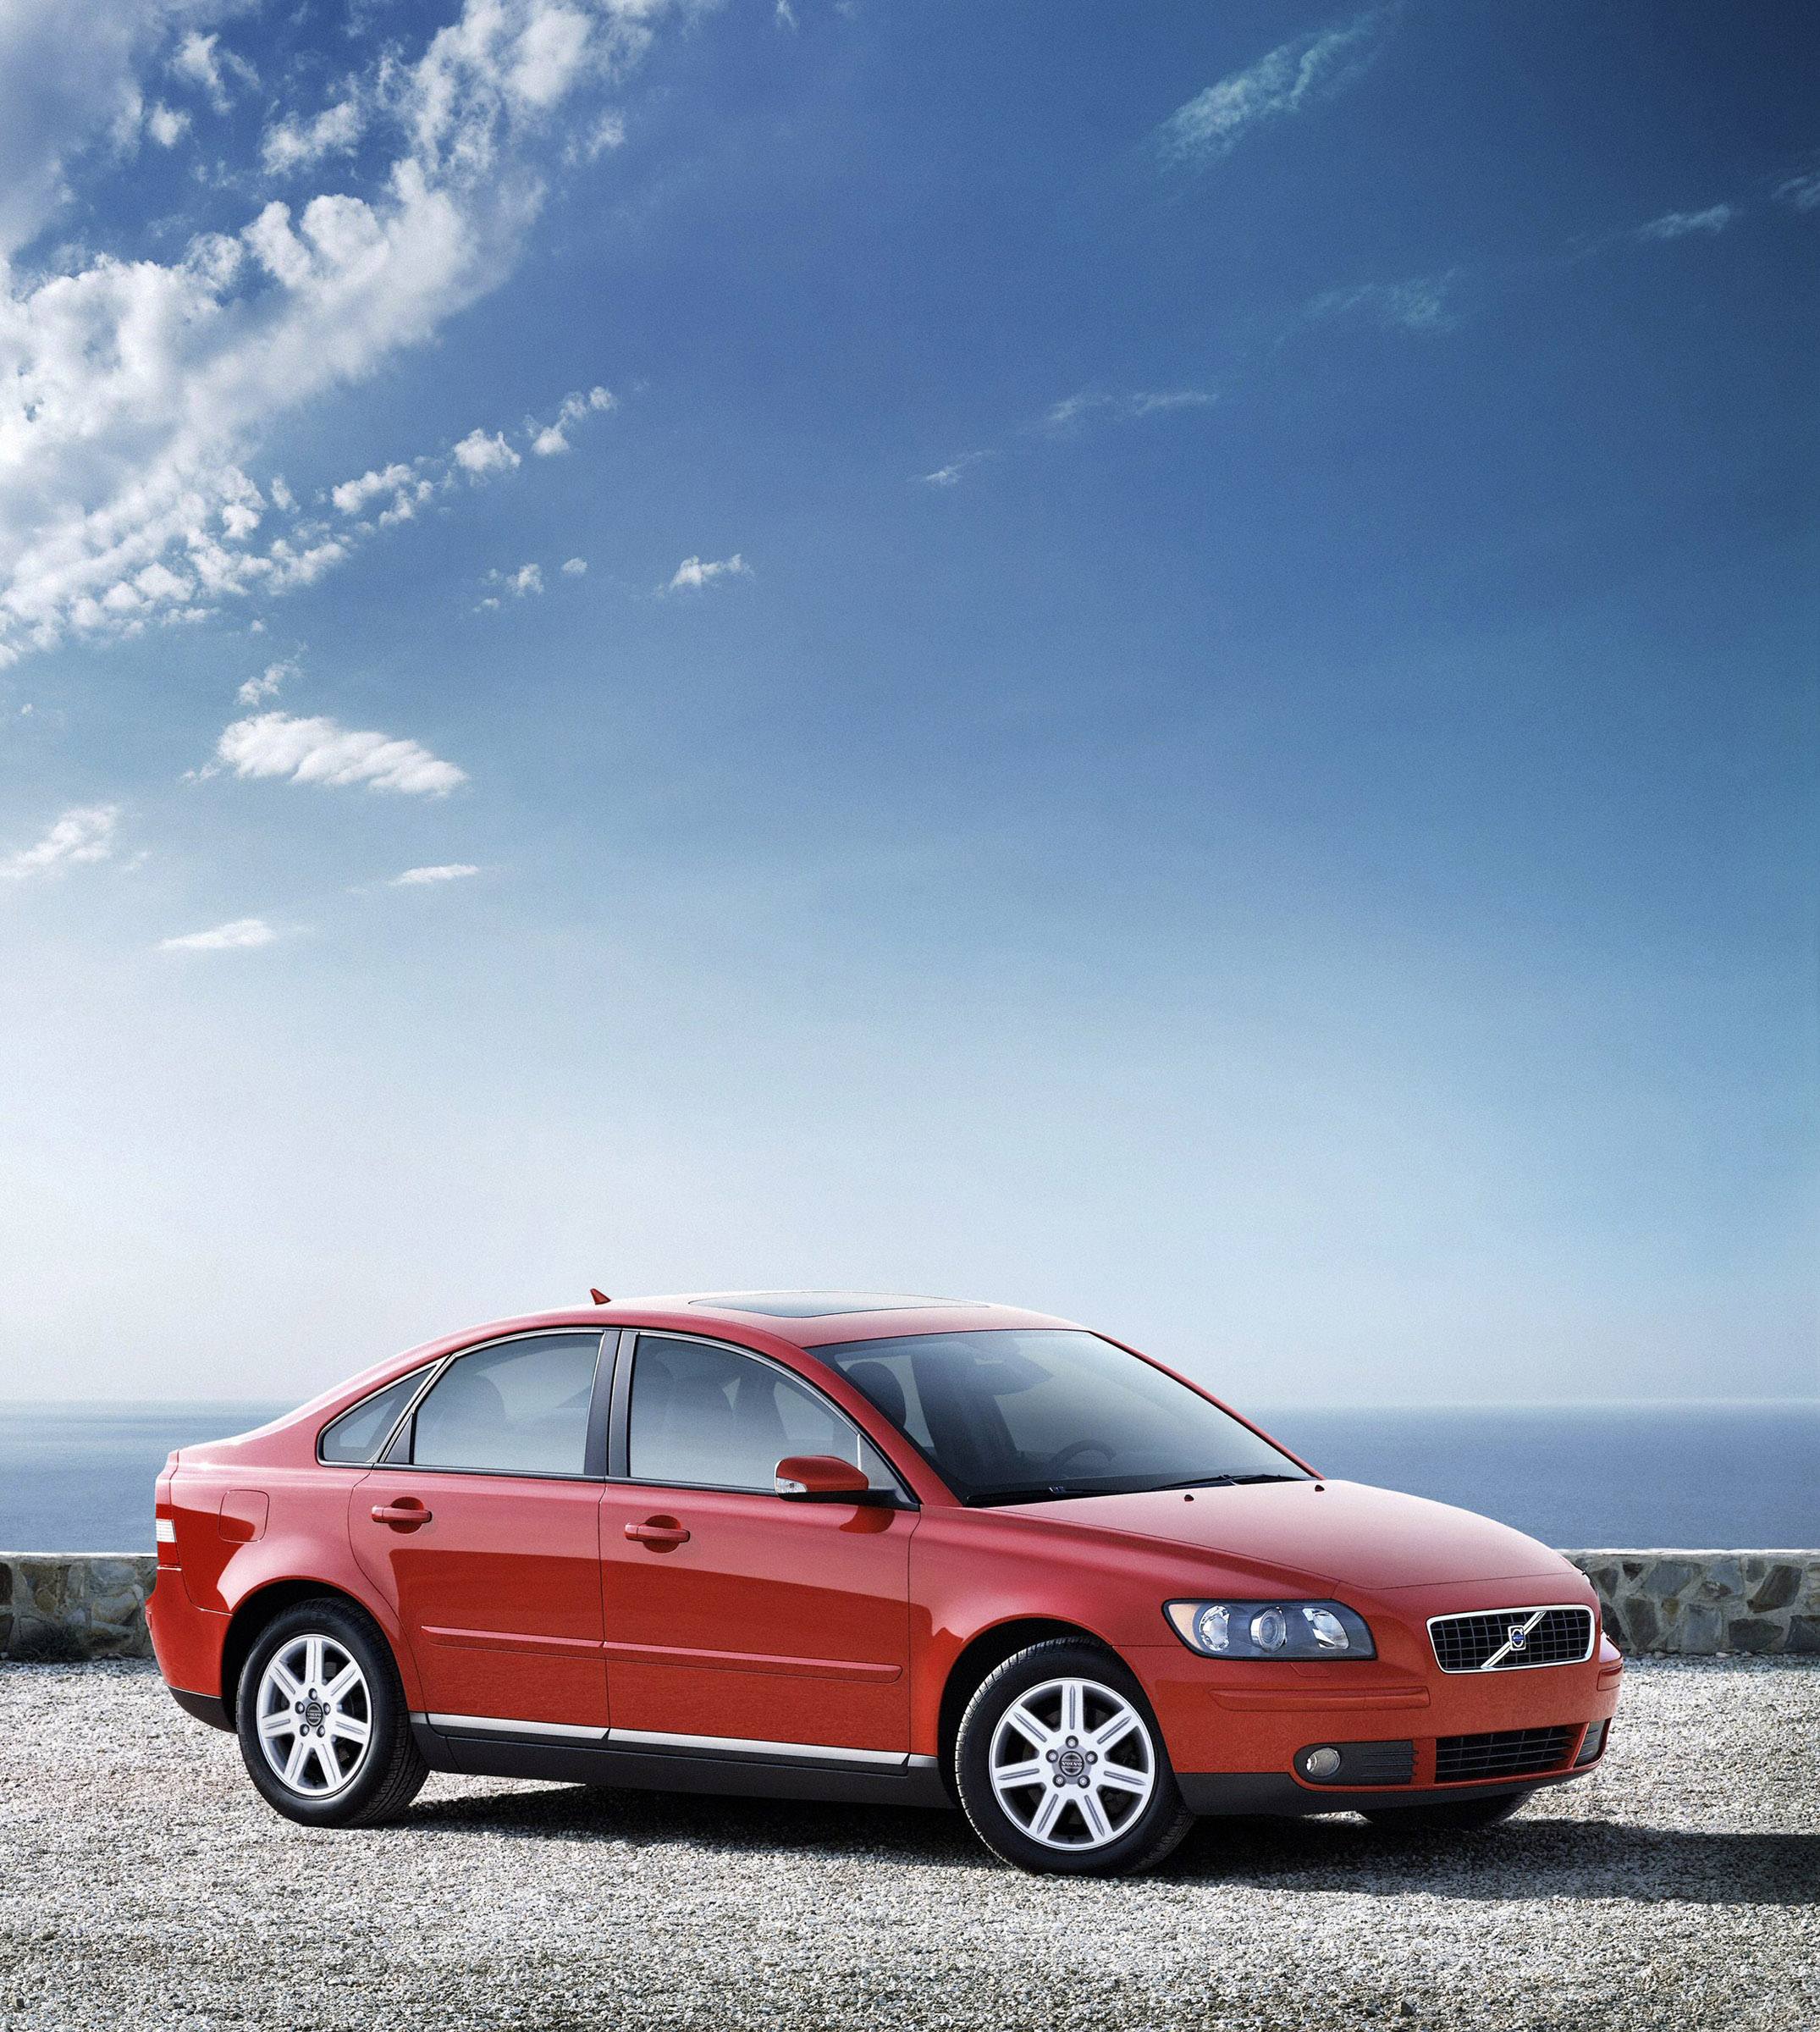 Volvo S40 Wallpaper: 2010 Maybach 62